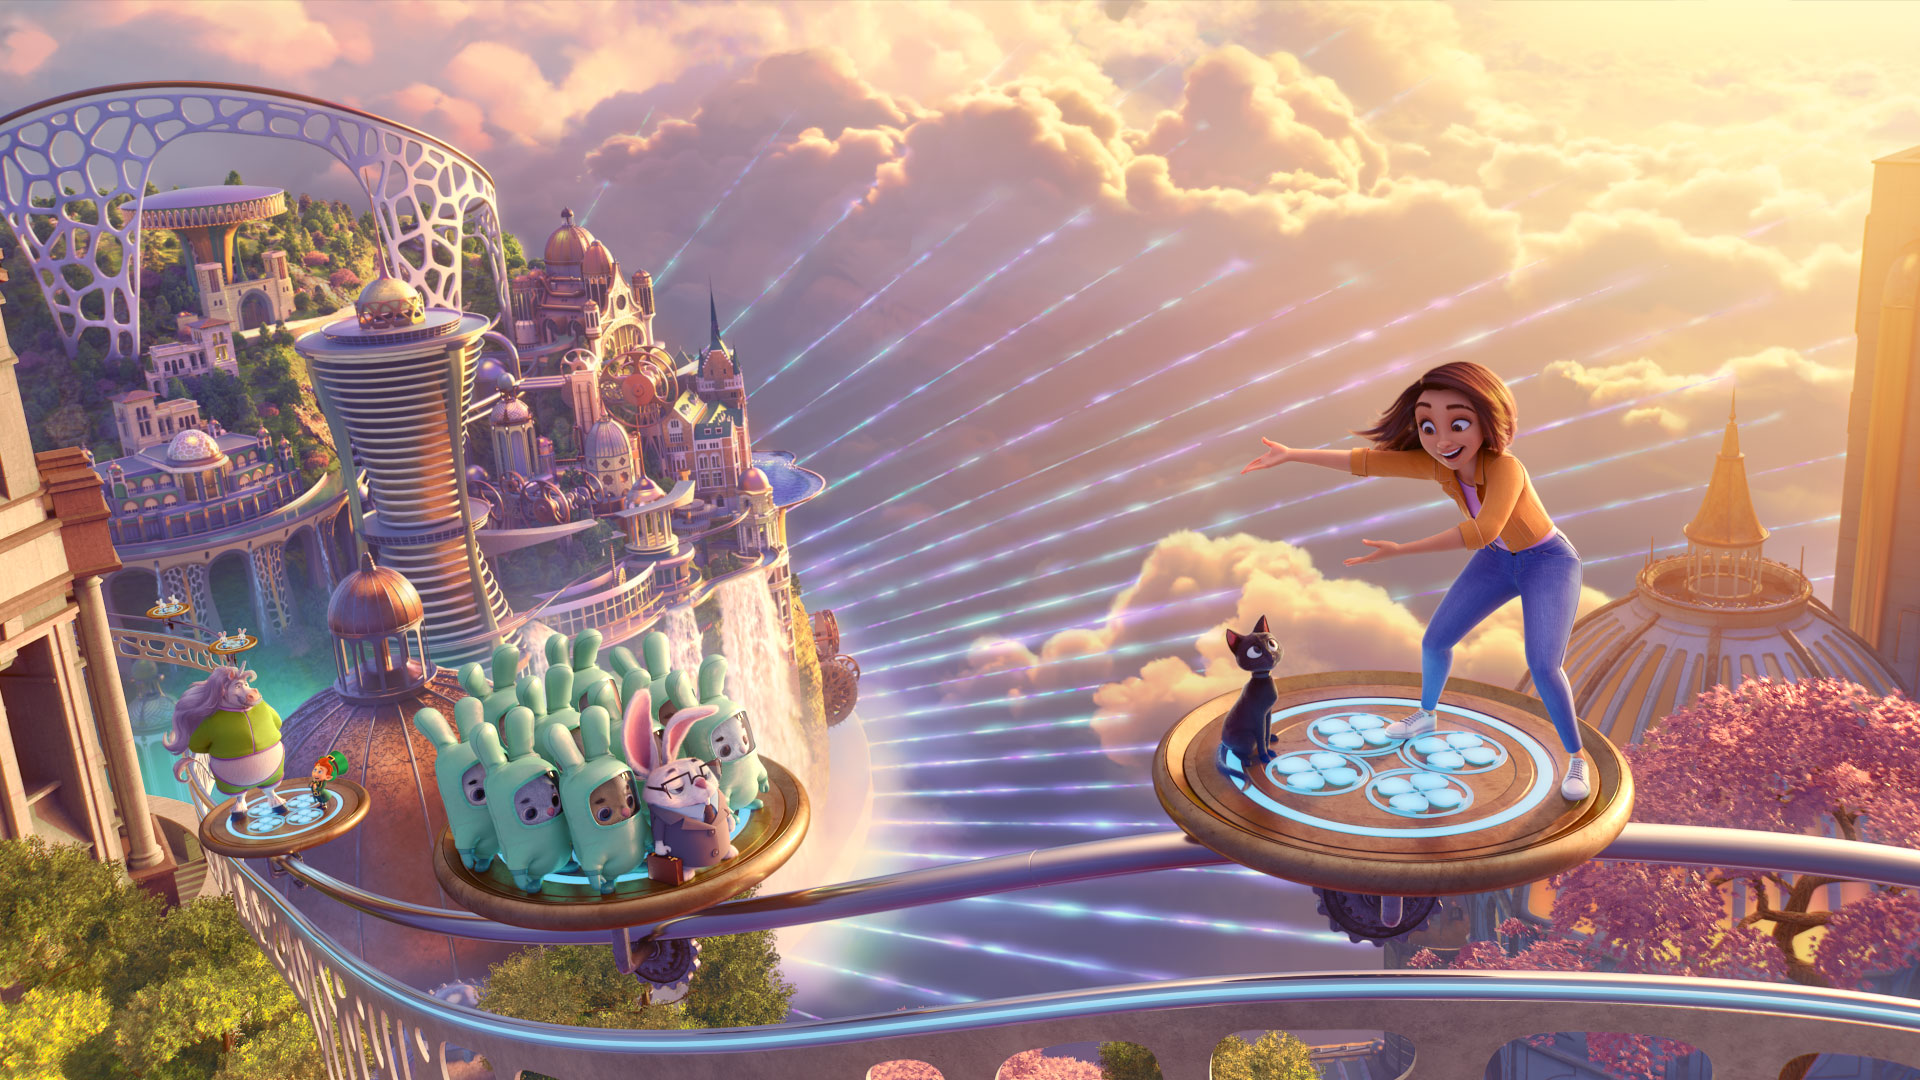 LUCK 2022 - One of The Top ANimation Movies 2022 for Kids